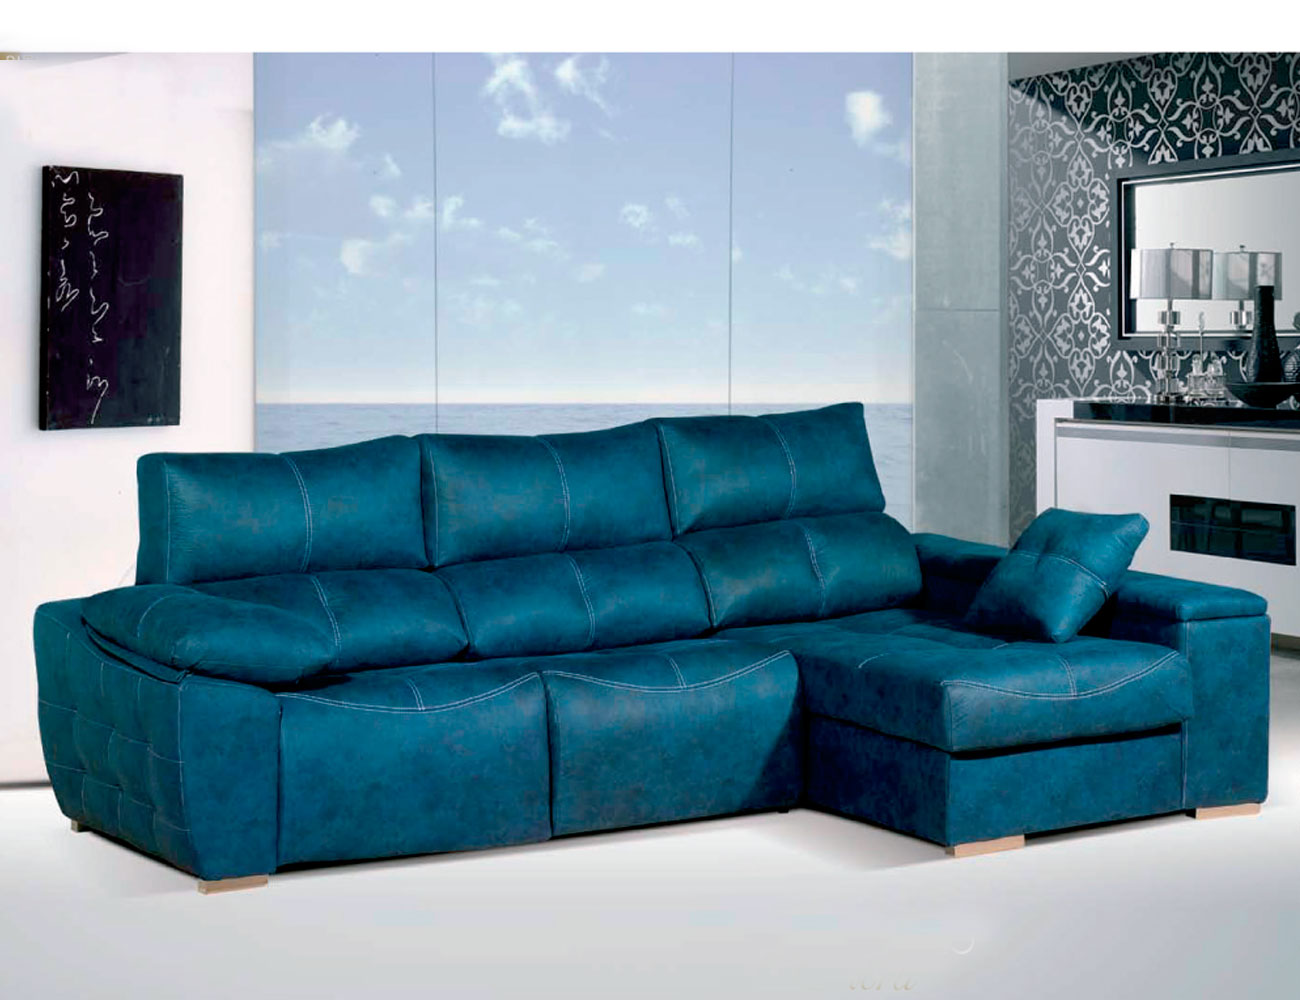 Sofa chaiselongue relax 2 motores anti manchas turquesa27